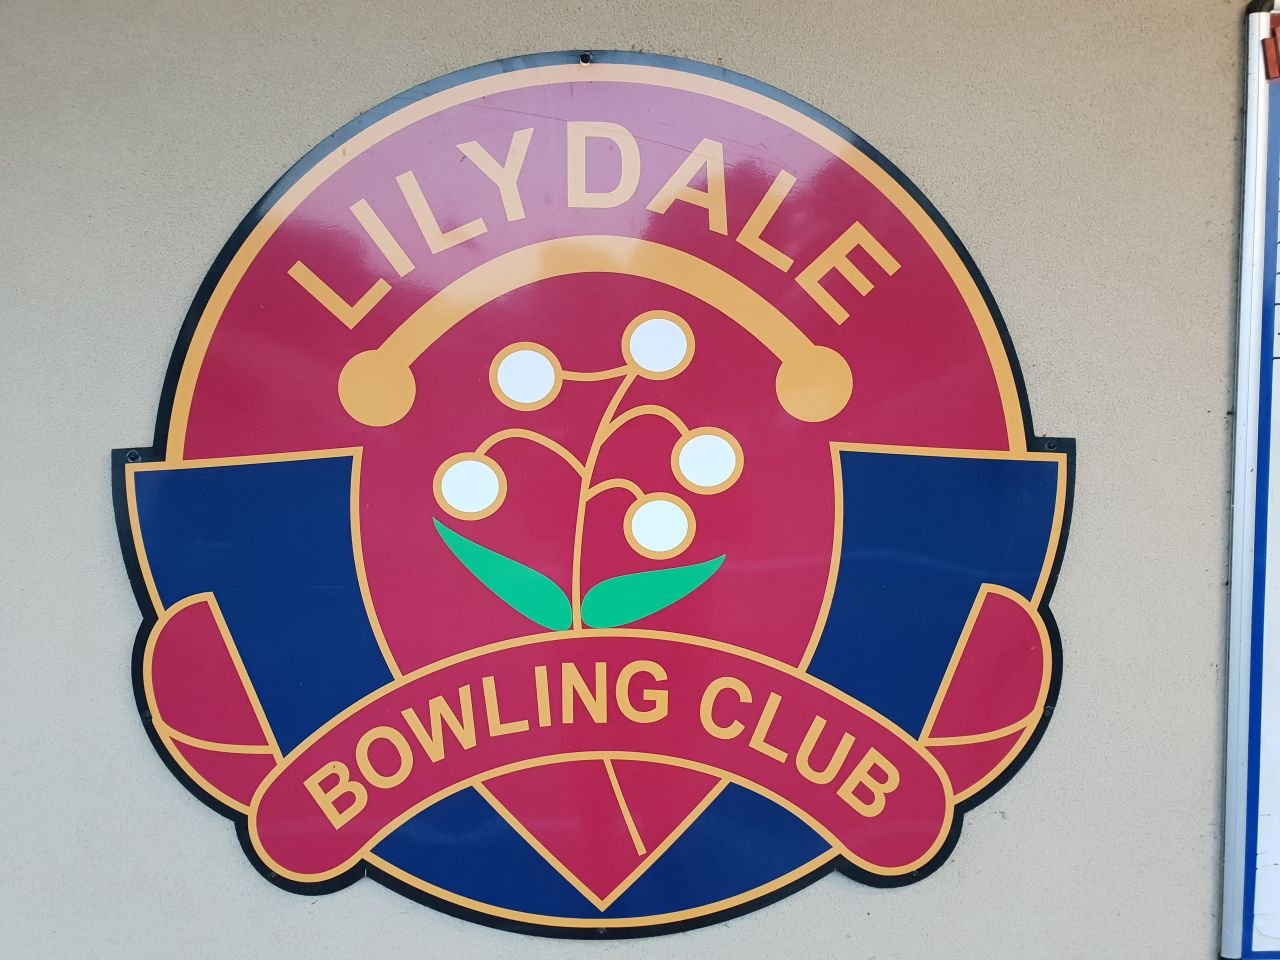 It was a great evening at the Lilydale Bowling Club. Please refer to our 'Yarra Grapevine' Newsletter for more details.